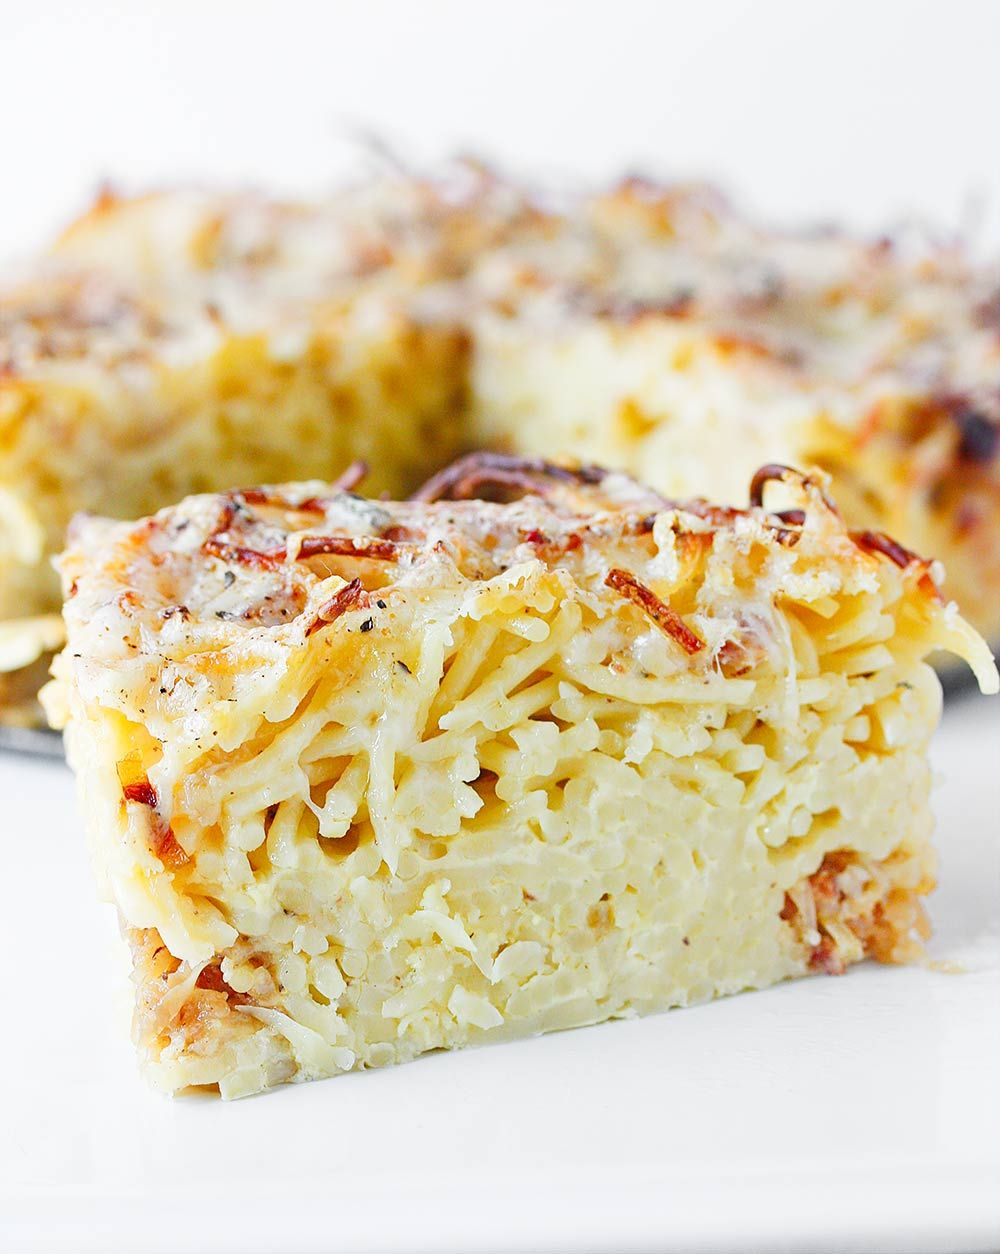 The classic American comfort food gets a super fun preparation: baked into a sliceable spaghetti pie stuffed with cheese and savory caramelized onions.